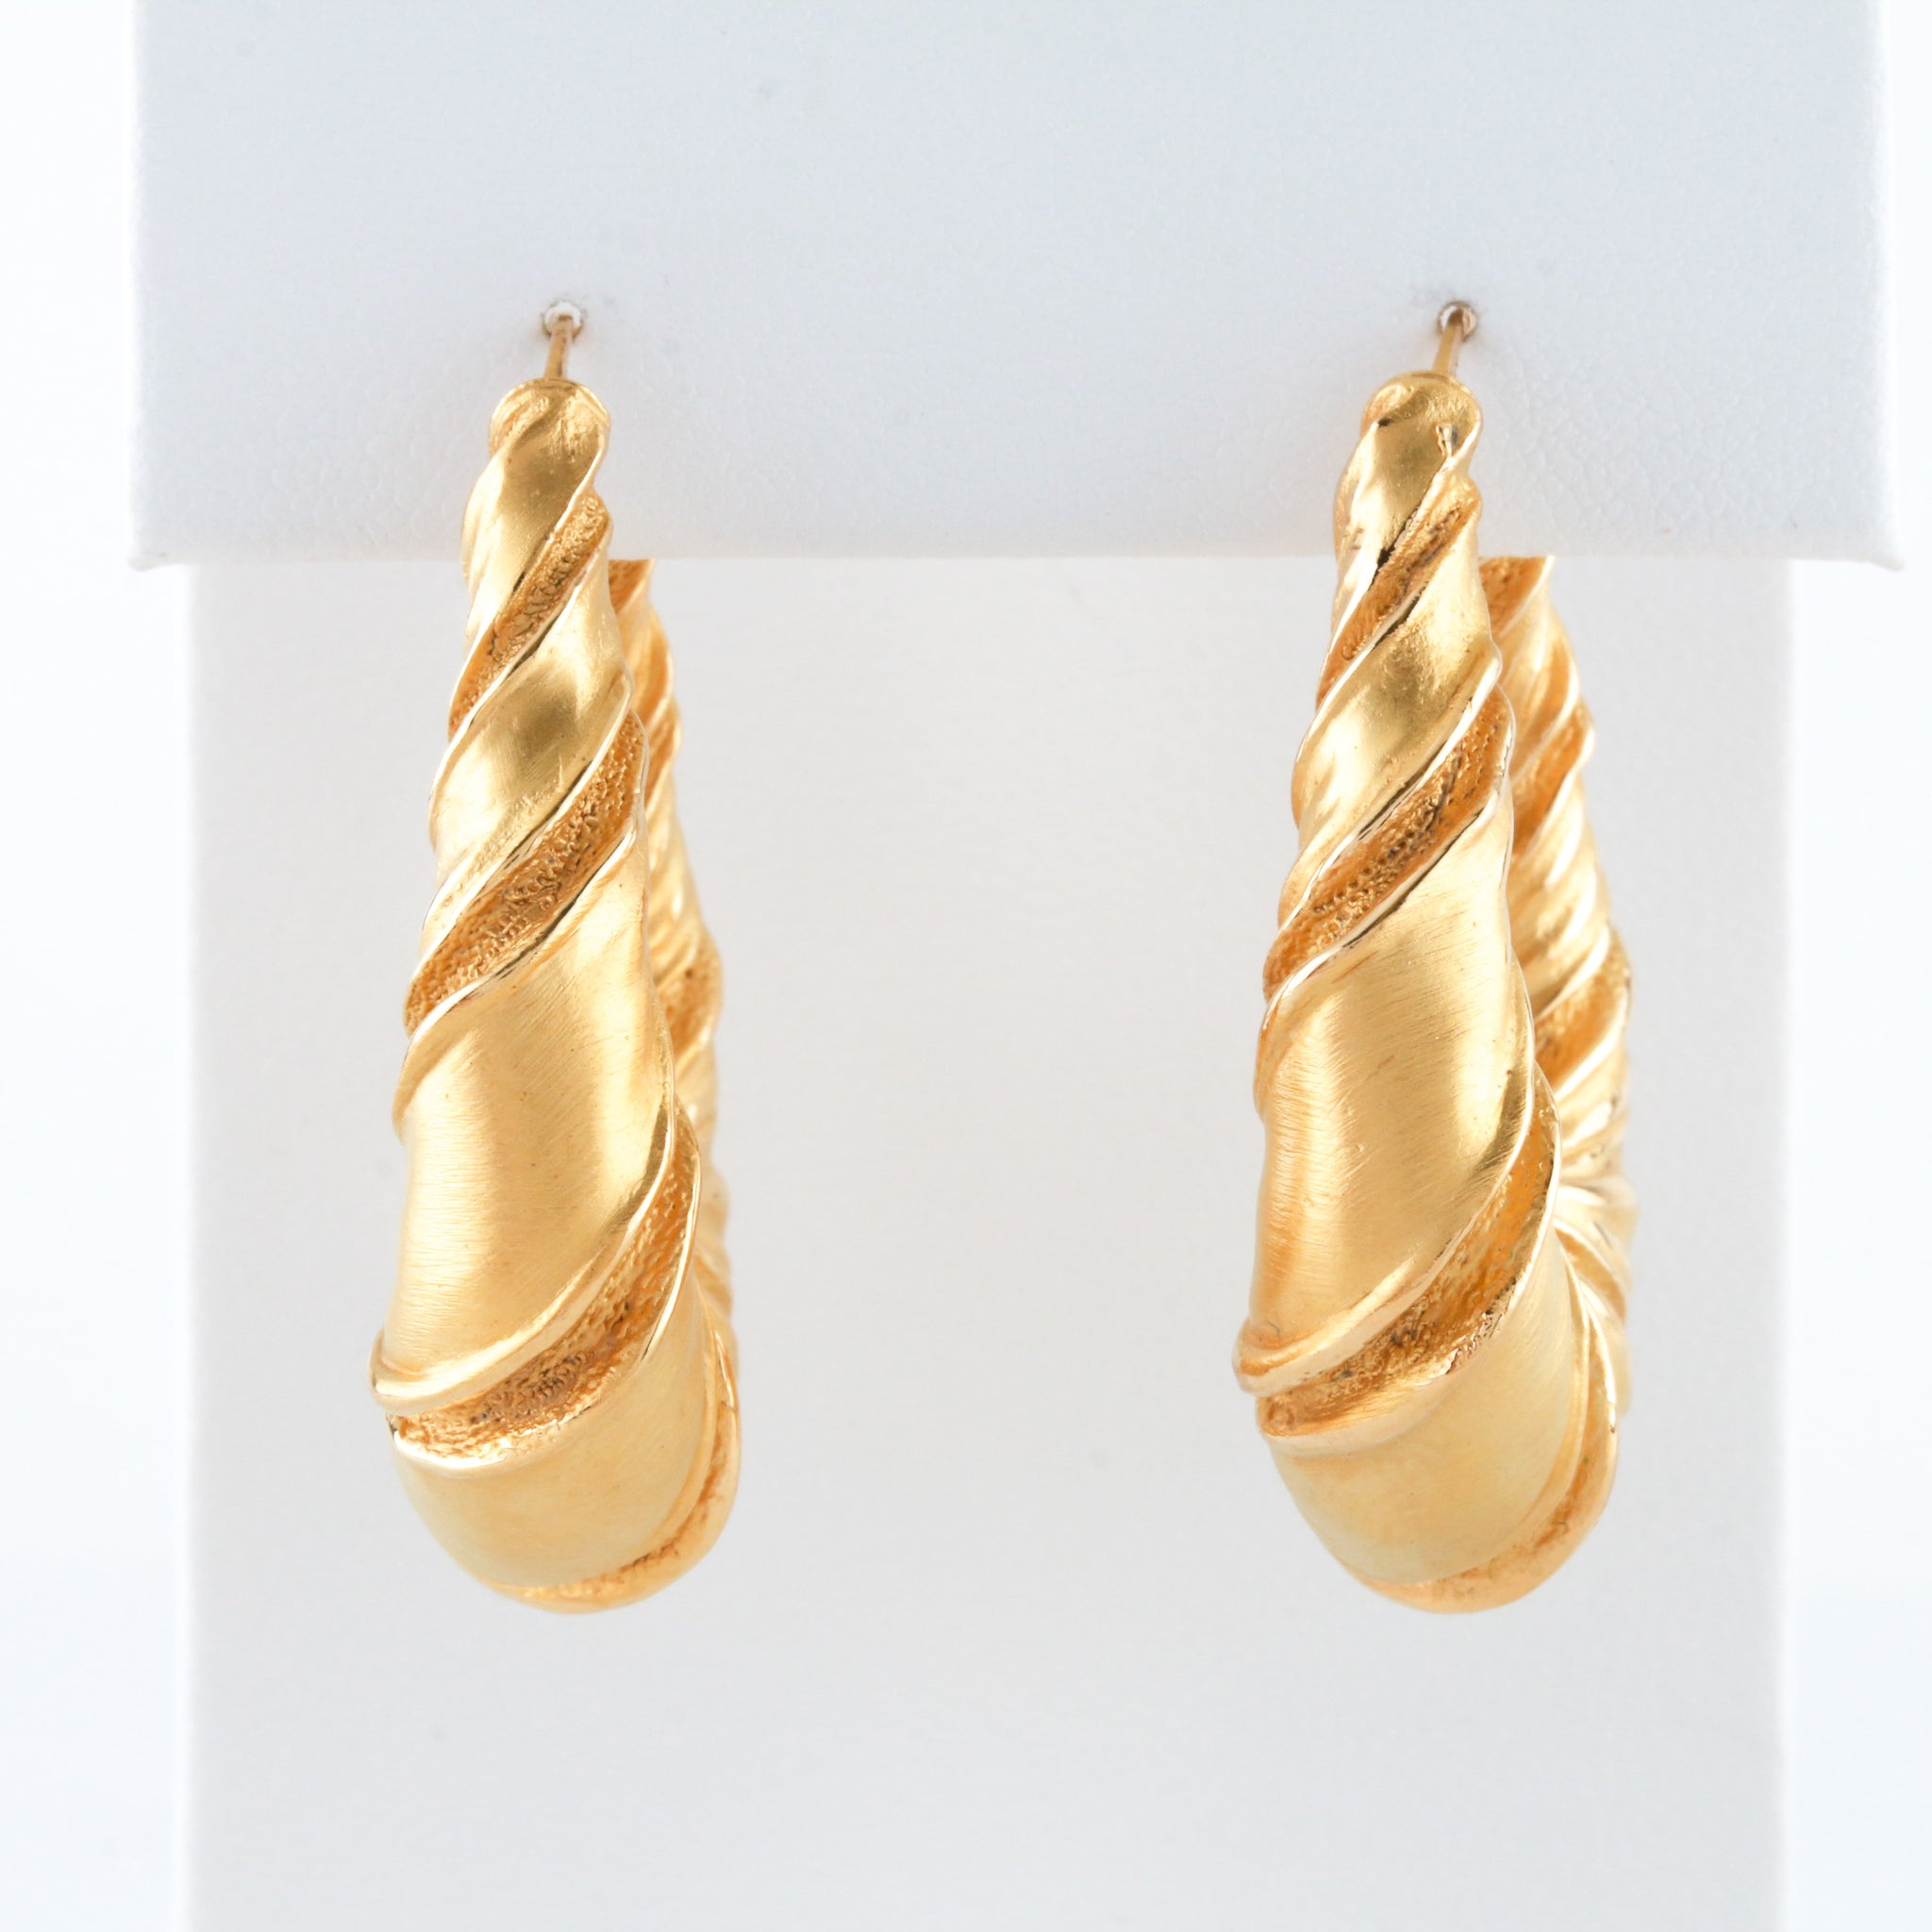 *SOLD* French Satin Finish Gold Hoop Earrings